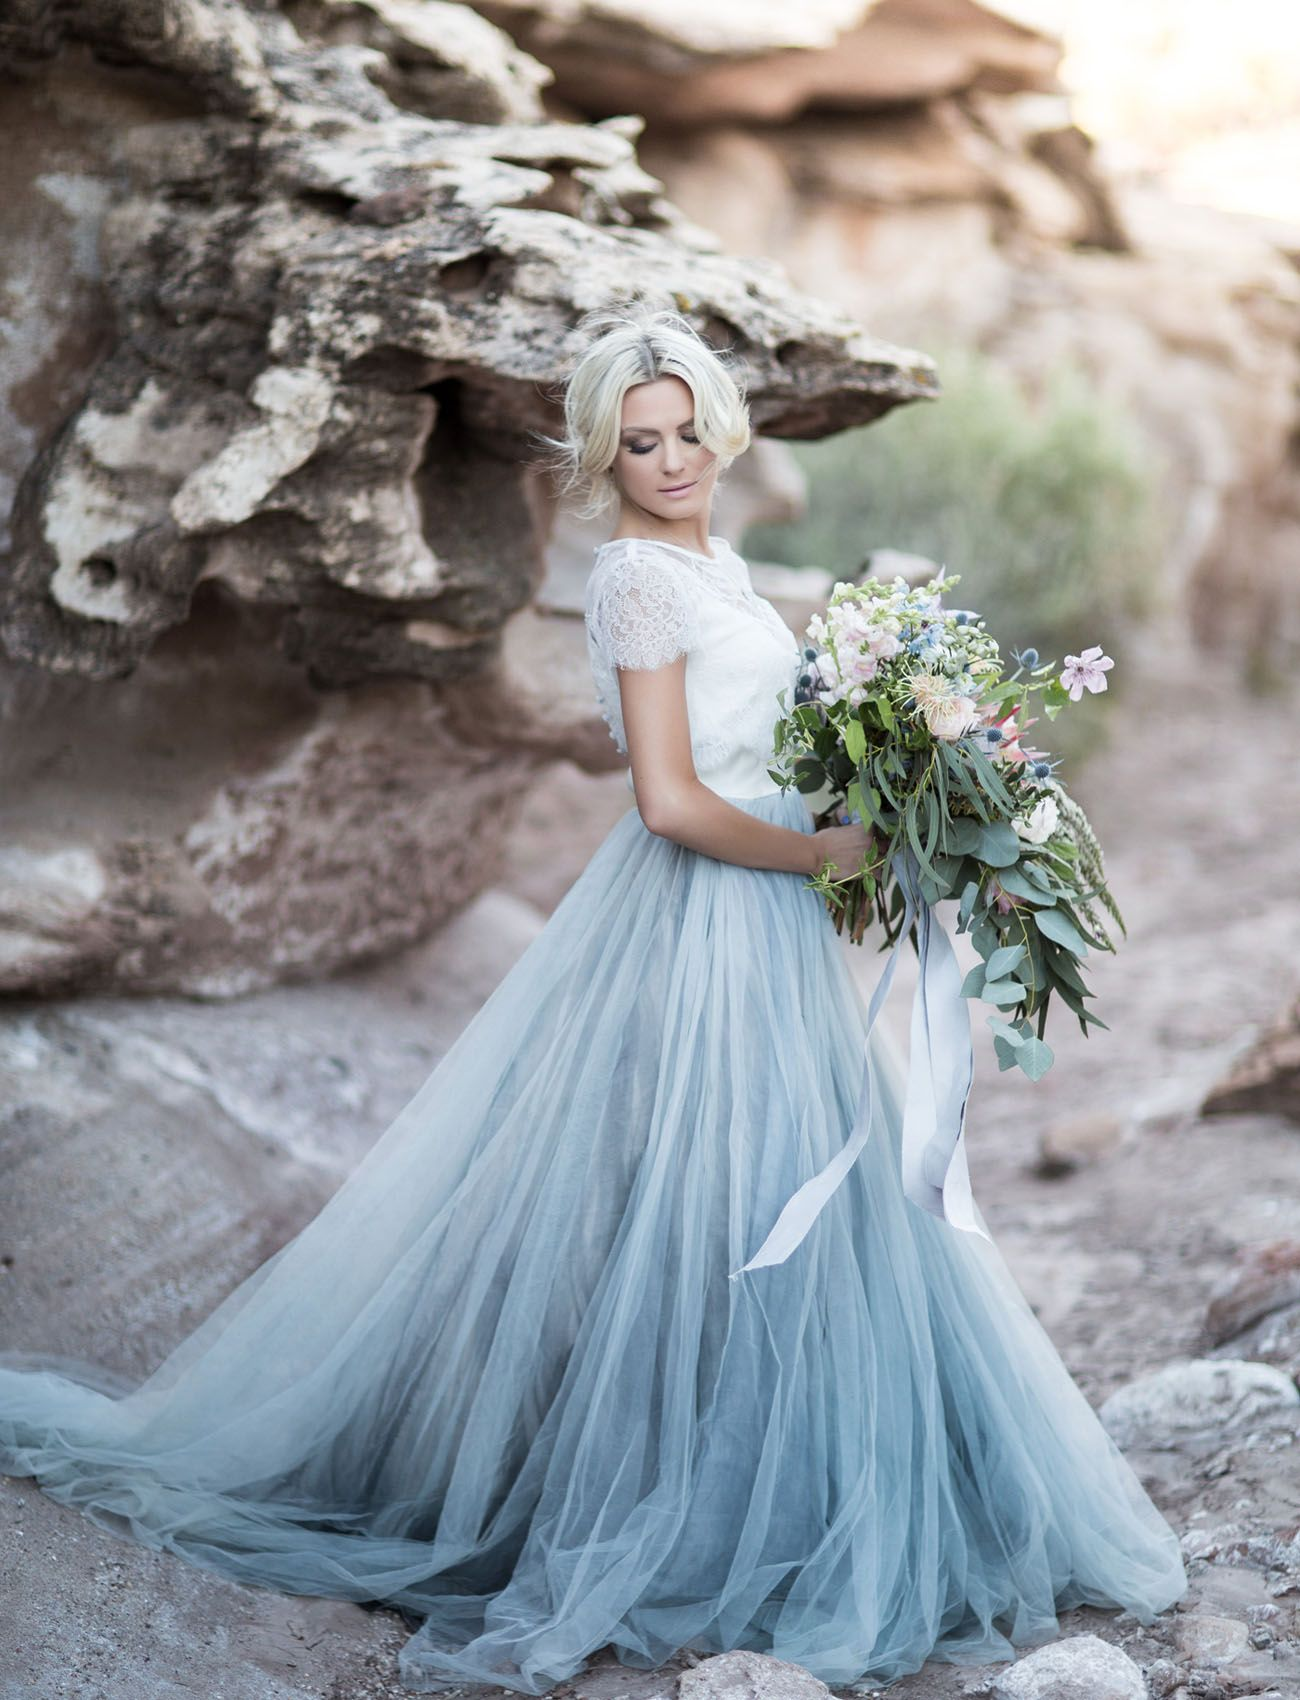 Desert Wedding Inspiration at Zion National Park | Blue tulle skirt ...